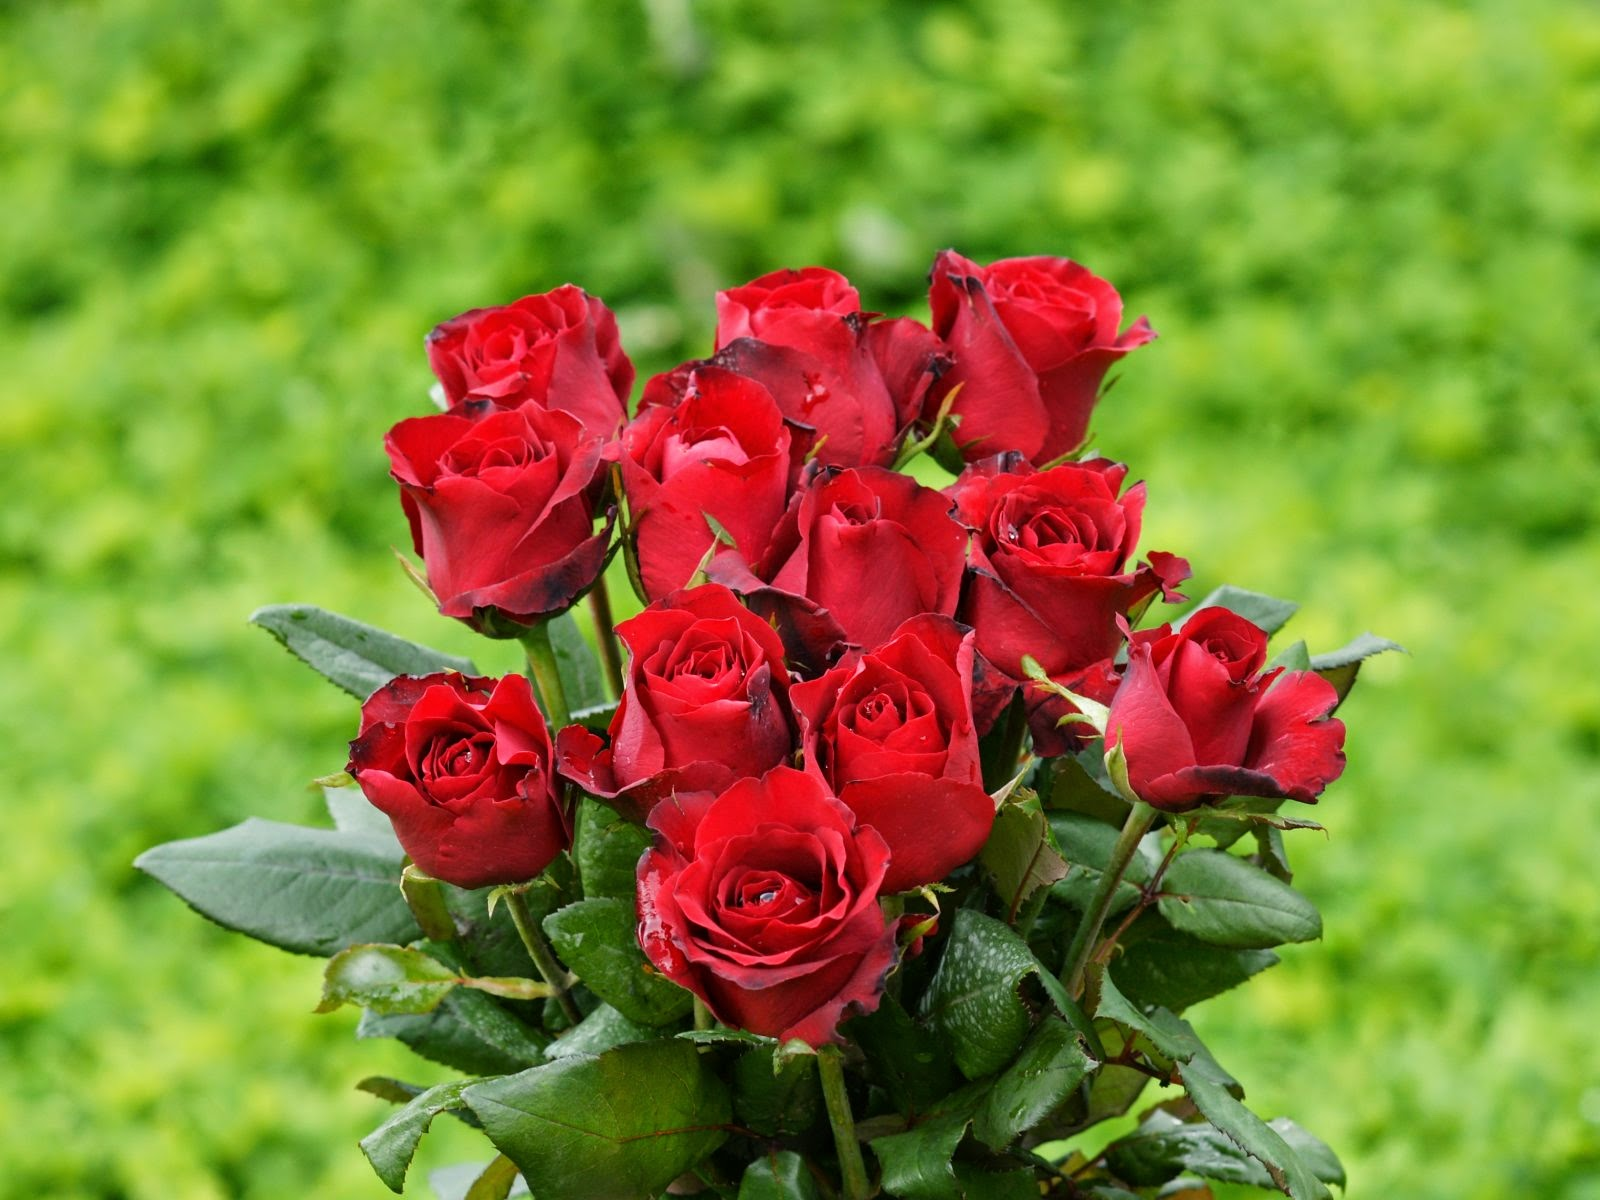 Top 10 most beautiful flowers in the world top 10 listverse car the rose flower is really the most beautiful flower in the world from its looks and the way it has been widely used for different occasion dhlflorist Choice Image